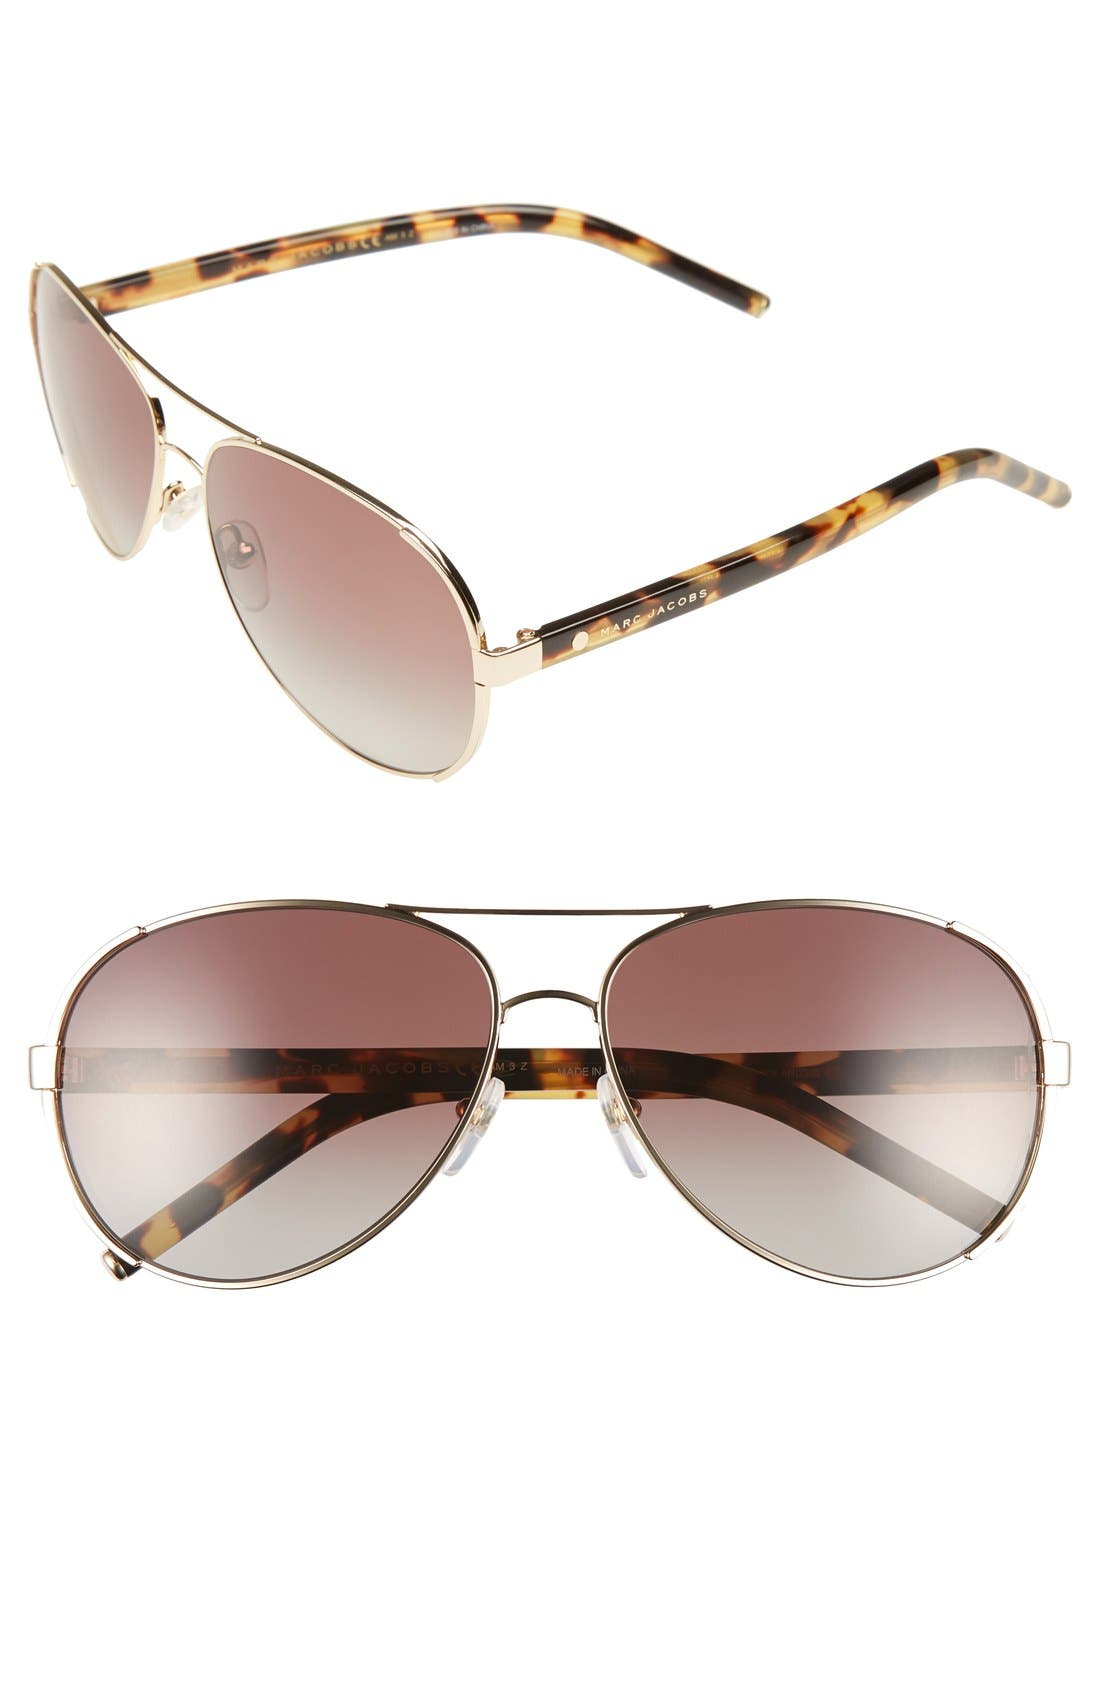 Alternate Image 1 Selected - MARC JACOBS 60mm Aviator Sunglasses